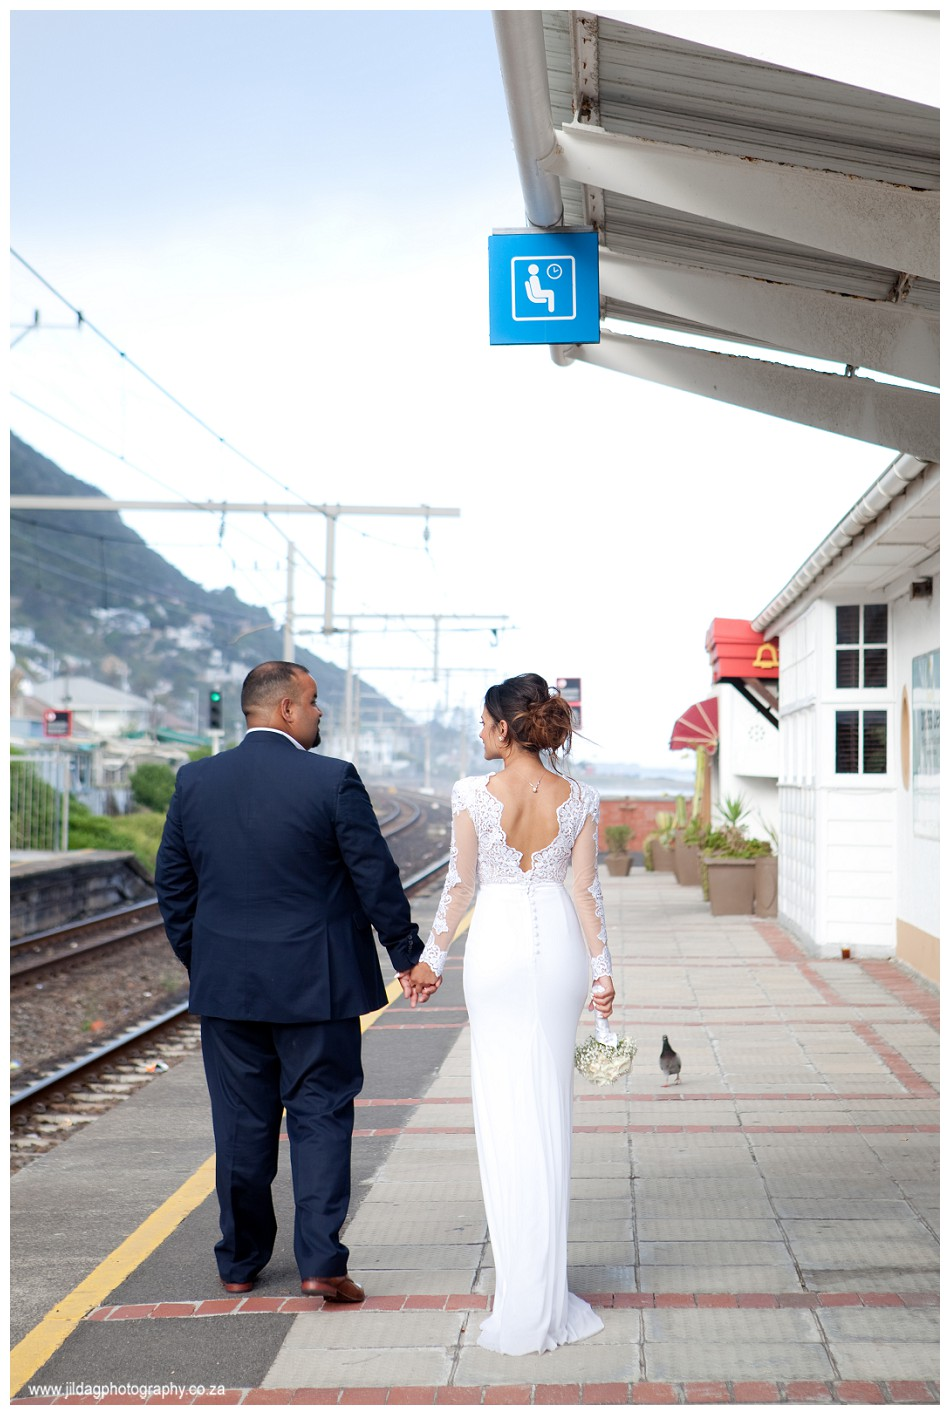 Beach - market - wedding - Kalk Bay - Jilda G Photography (68)